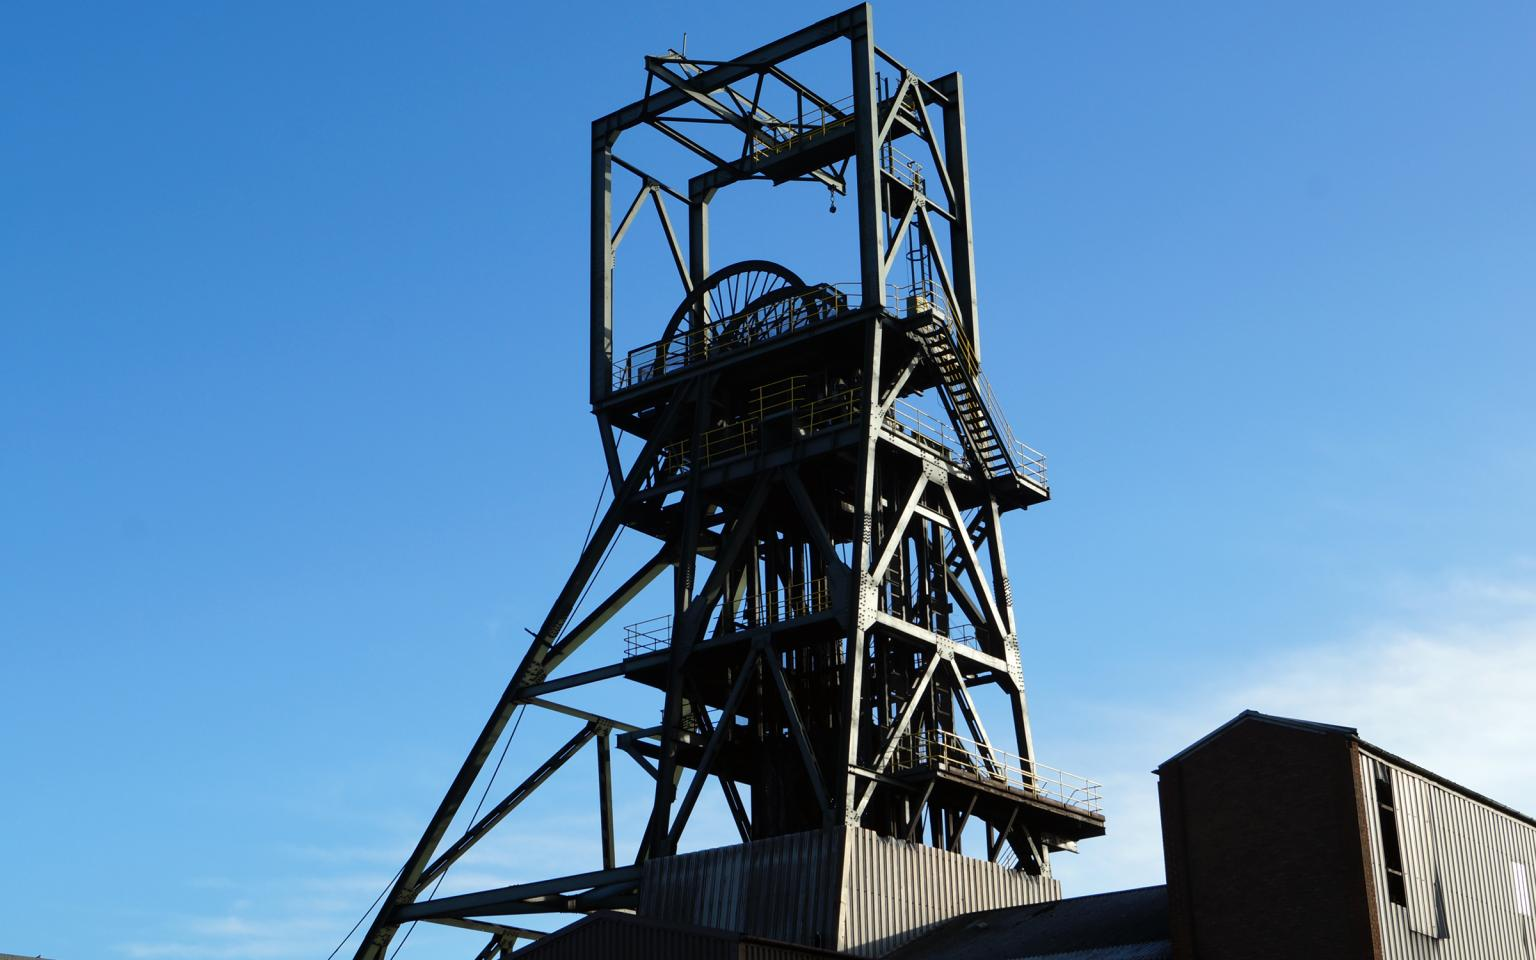 The Daw Mill colliery was closed in March 2013 since then work has been underway to make the site safe. ECS Engineering Services in conjunction with JMC on behalf of the Coal Authority have specially engineered the structure which will allow shaft No.1 to be filled safely